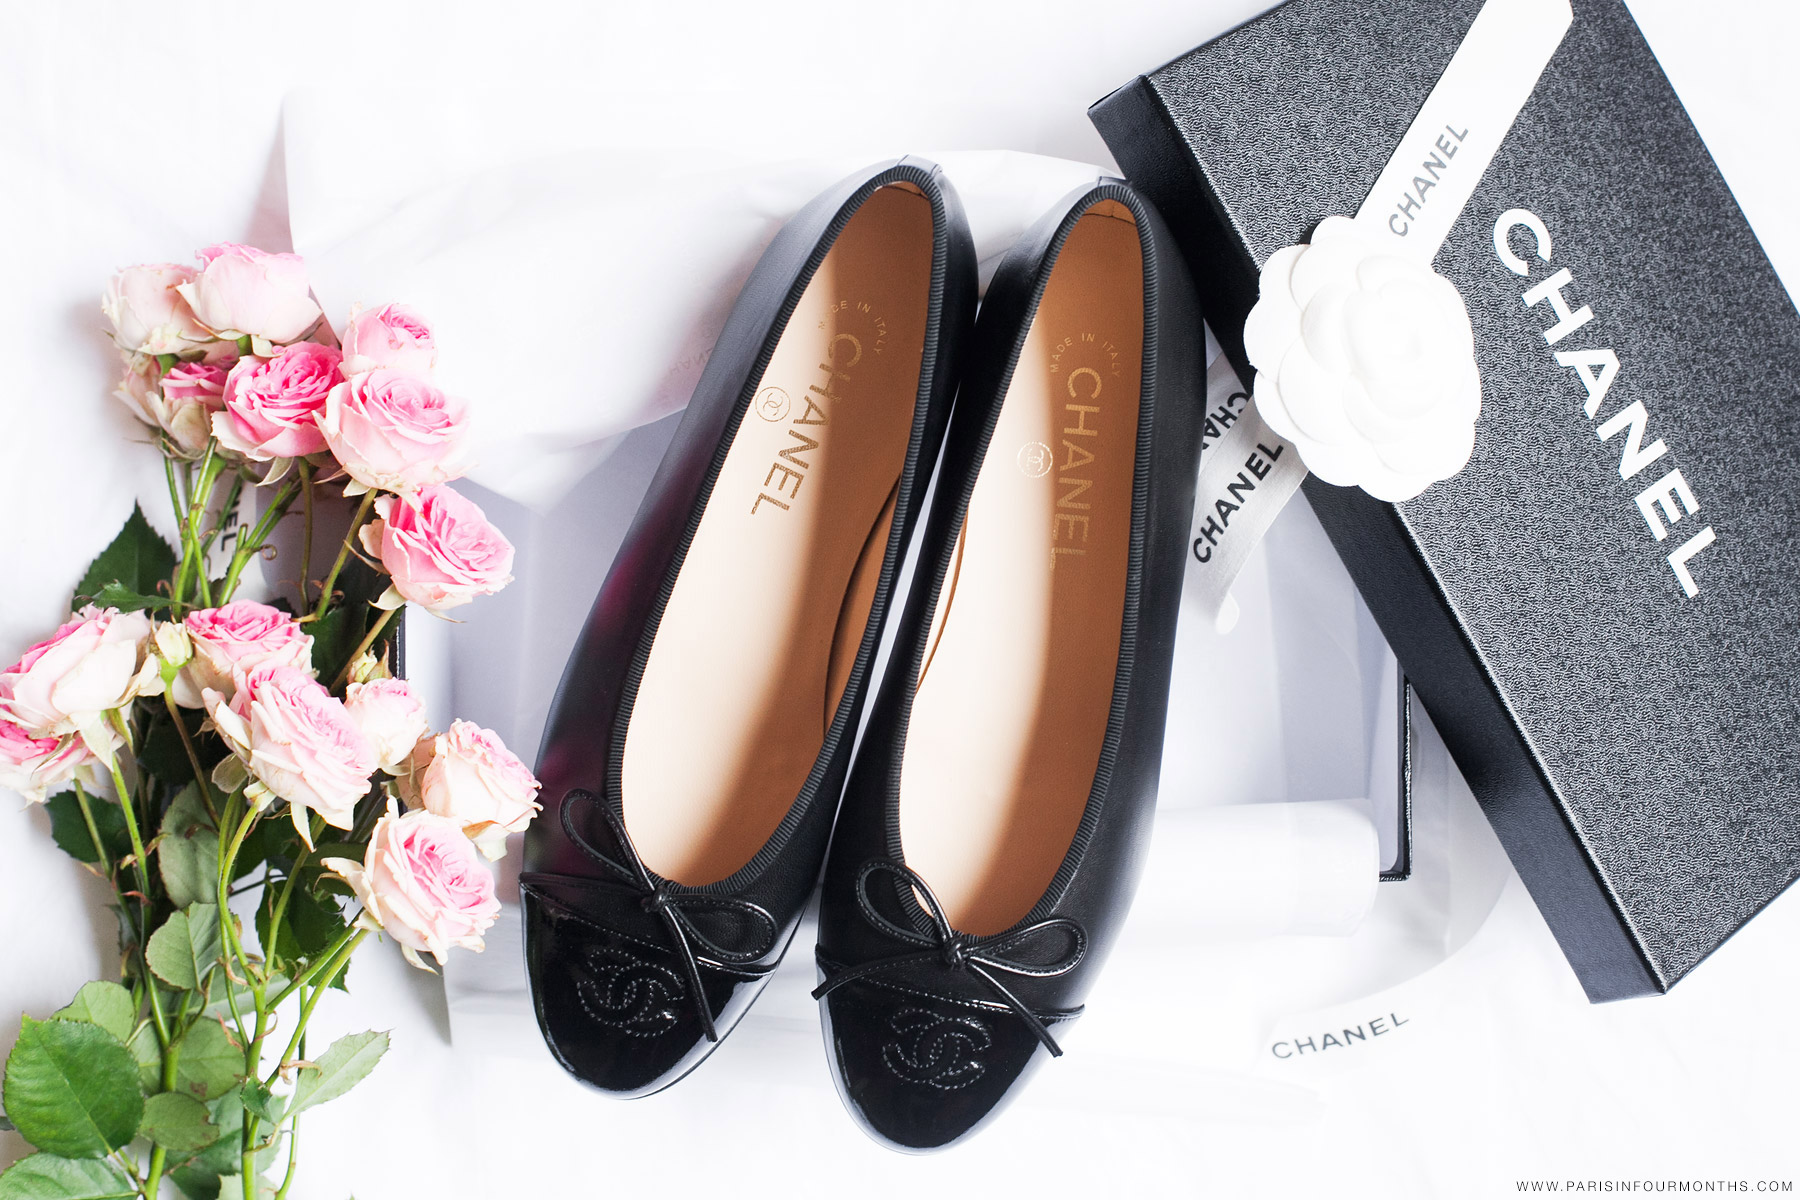 Chanel ballet flats by Carin Olsson (Paris in Four Months)